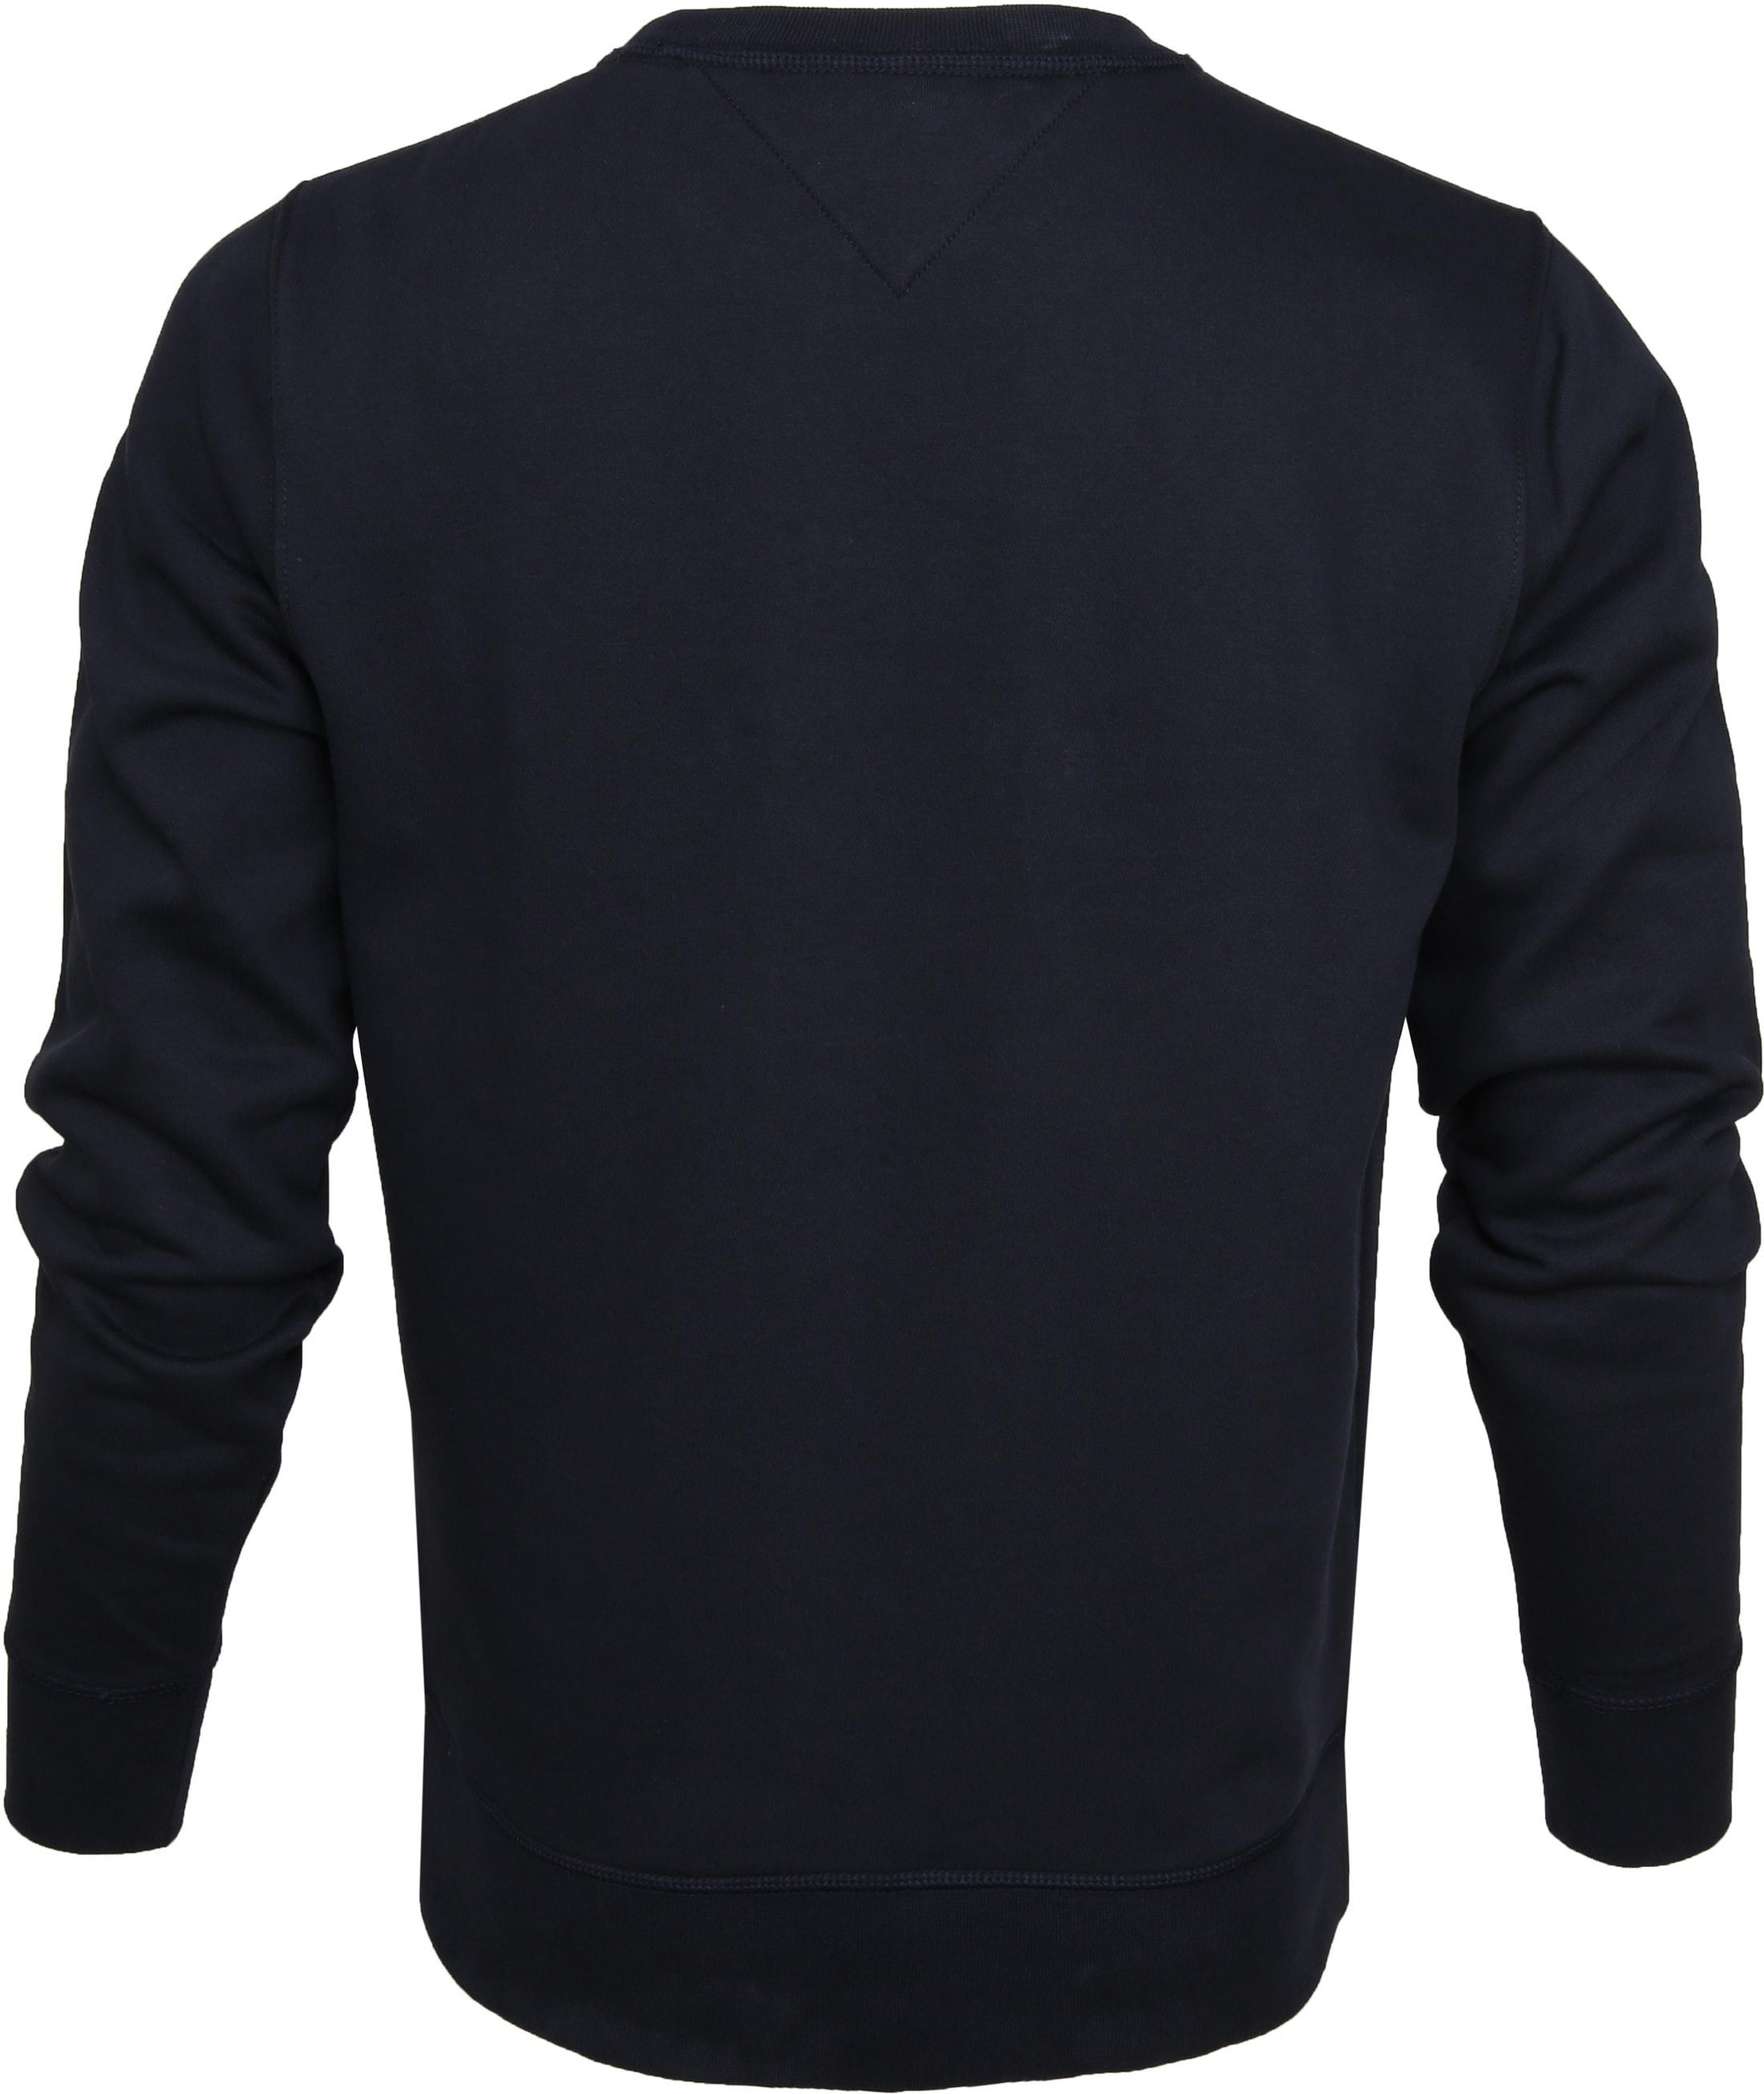 Tommy Hilfiger Sweater Logo Navy foto 2